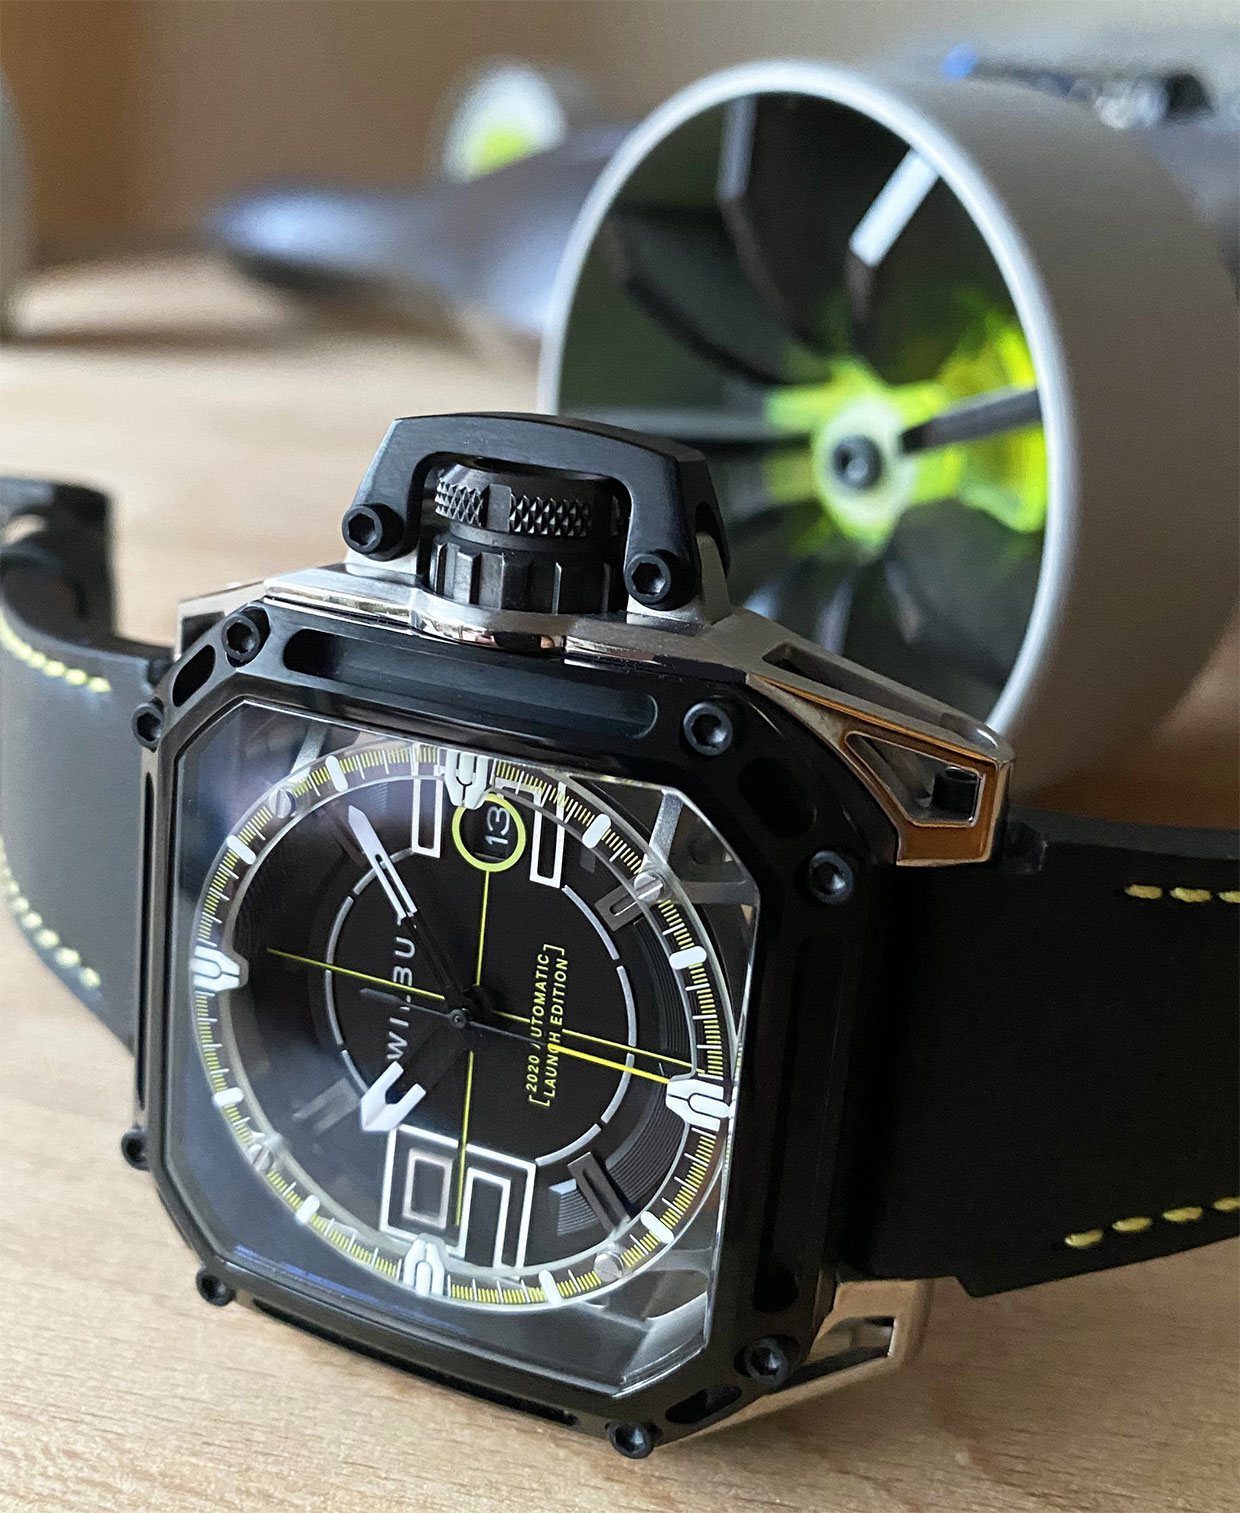 Wilbur Automatic Launch Edition Watches